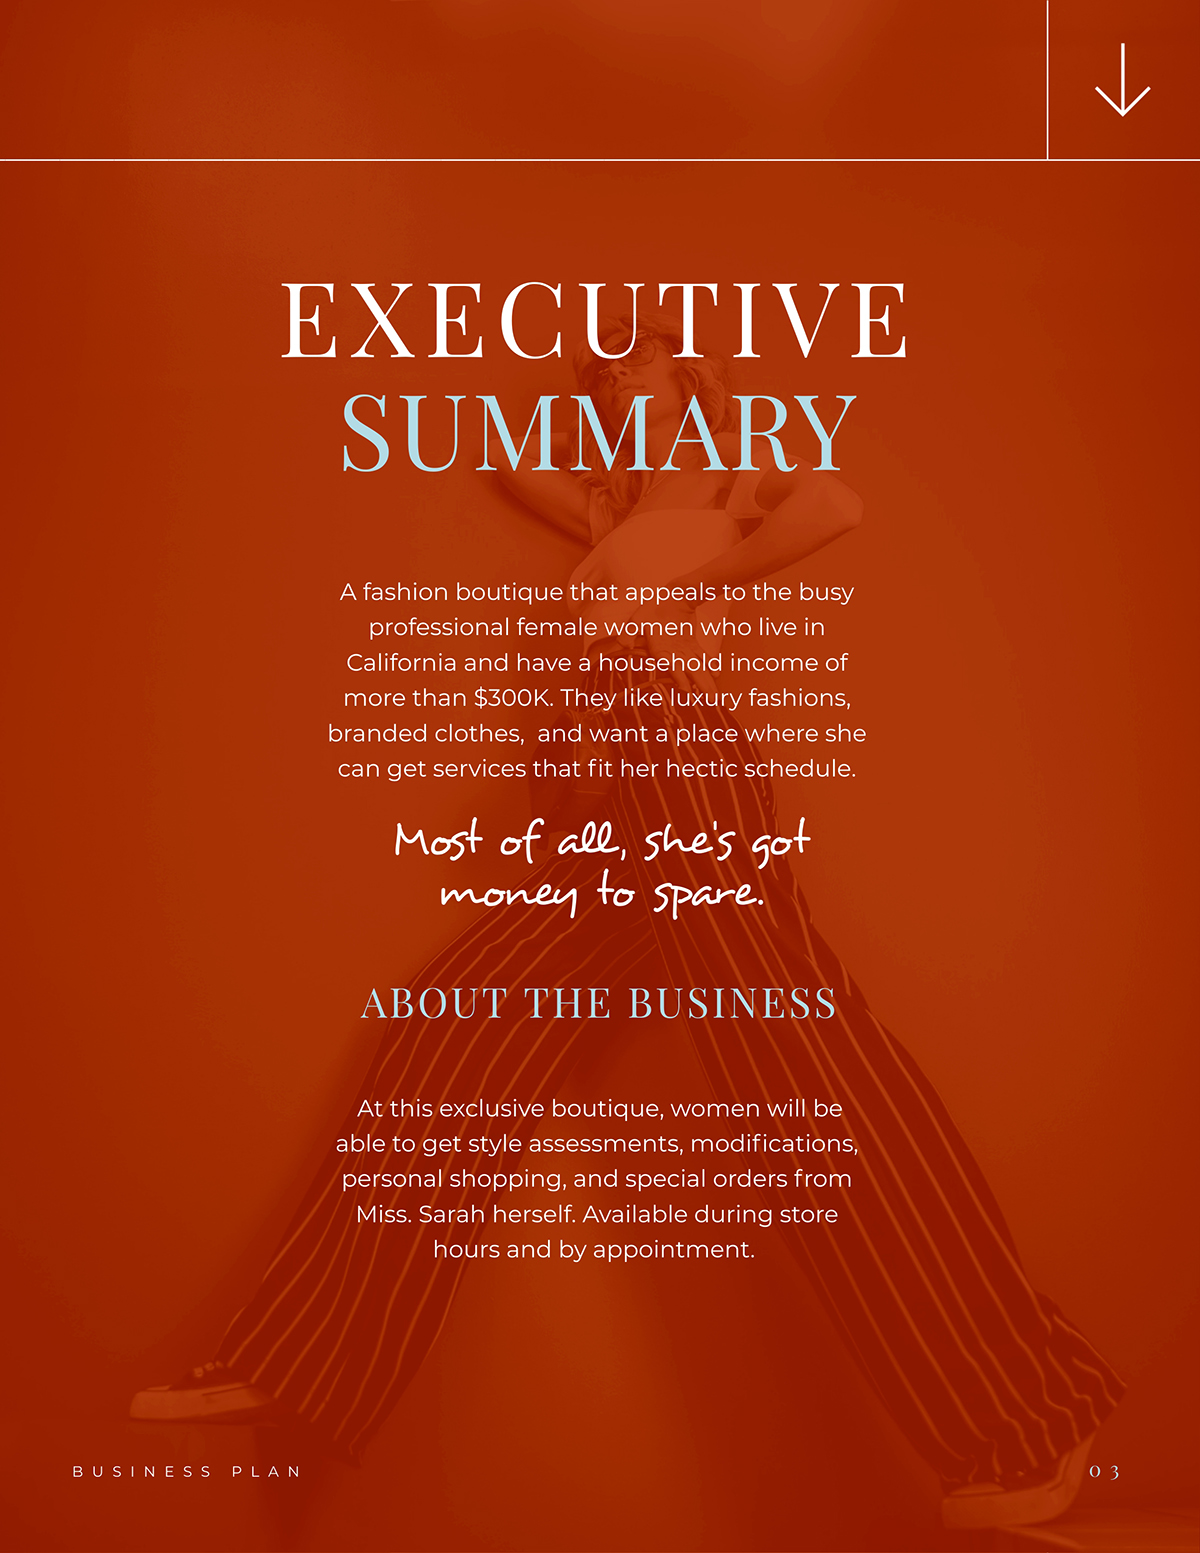 An executive summary section of a business plan.